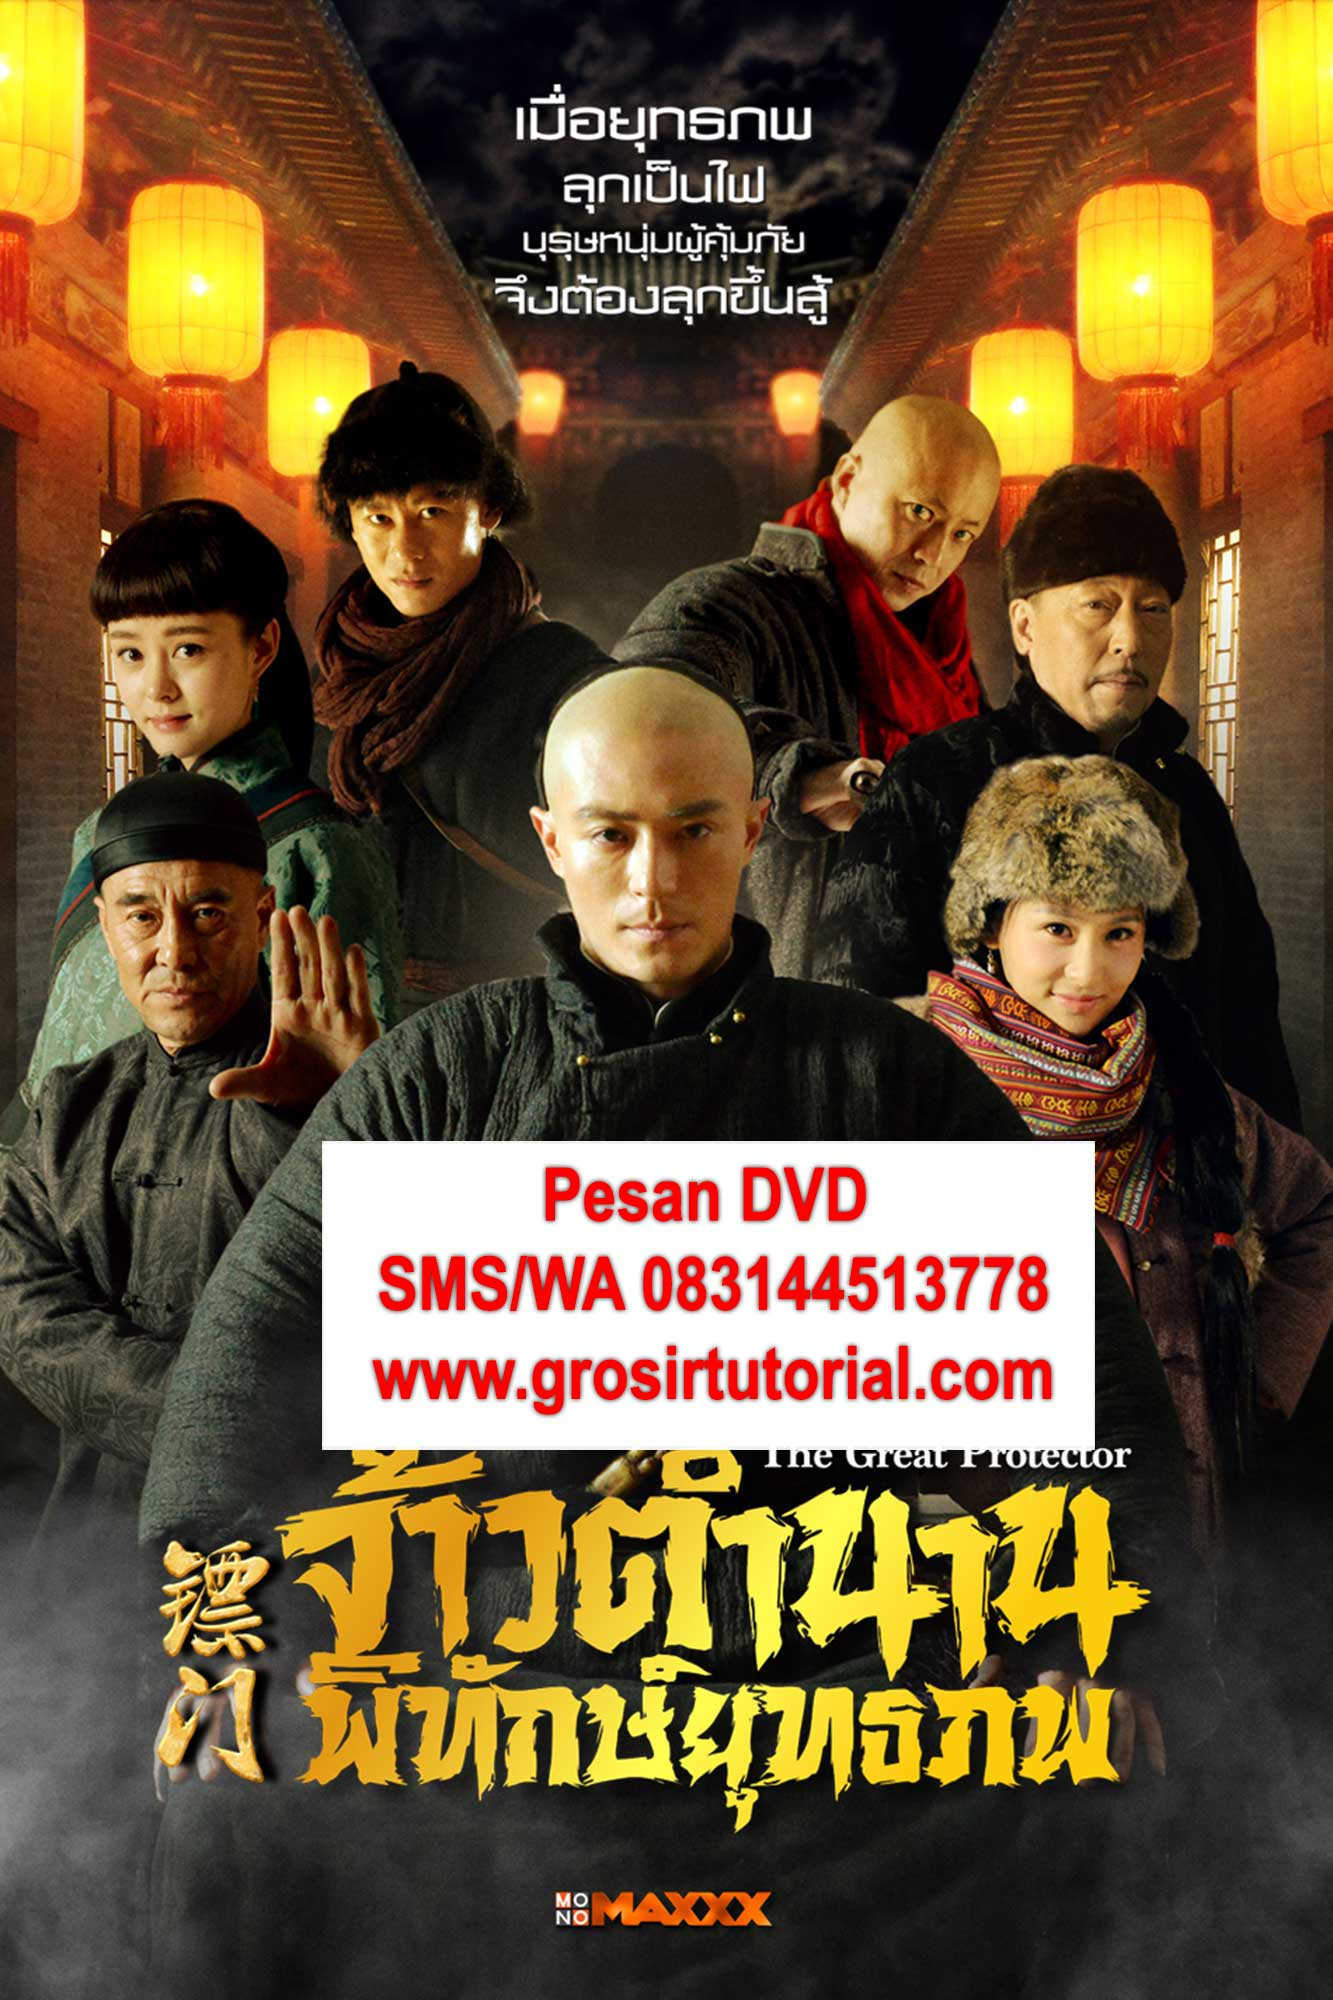 jual-DVD-mandarin-The-Great-Protector